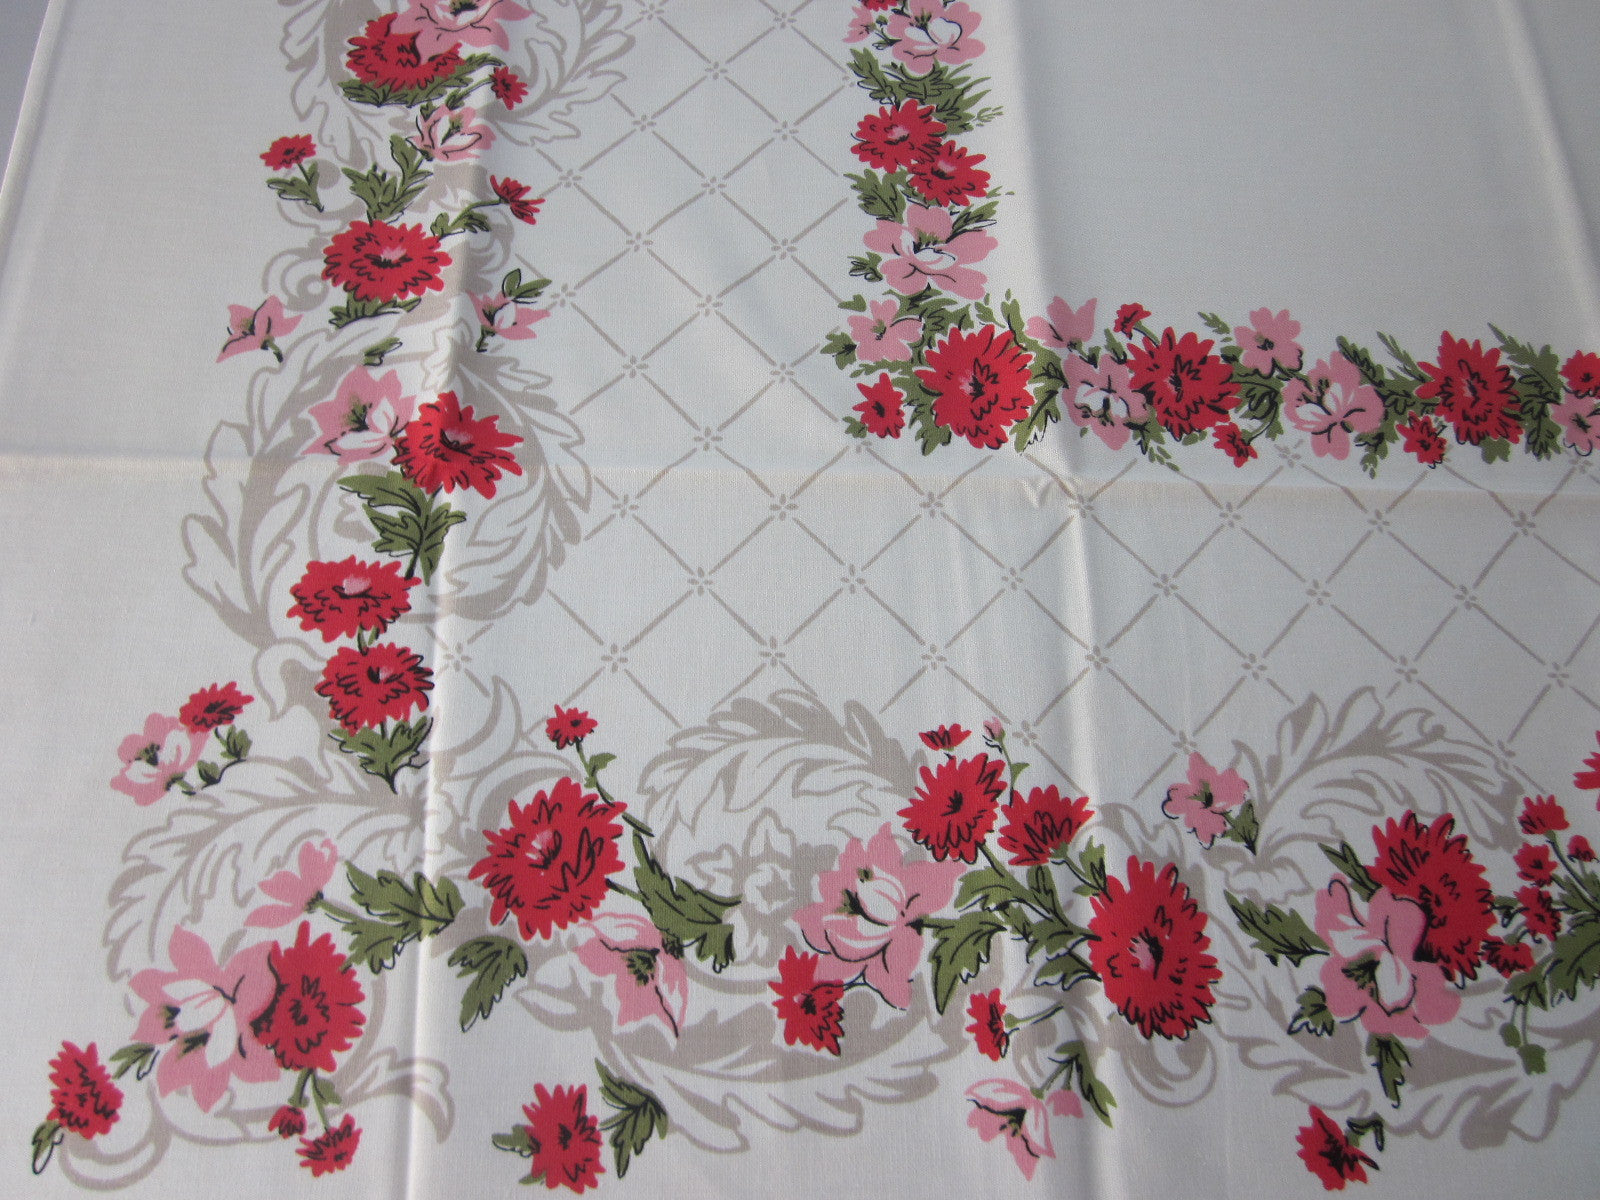 Simtex Pink Floral MWT Vintage Printed Tablecloth (67 X 52)